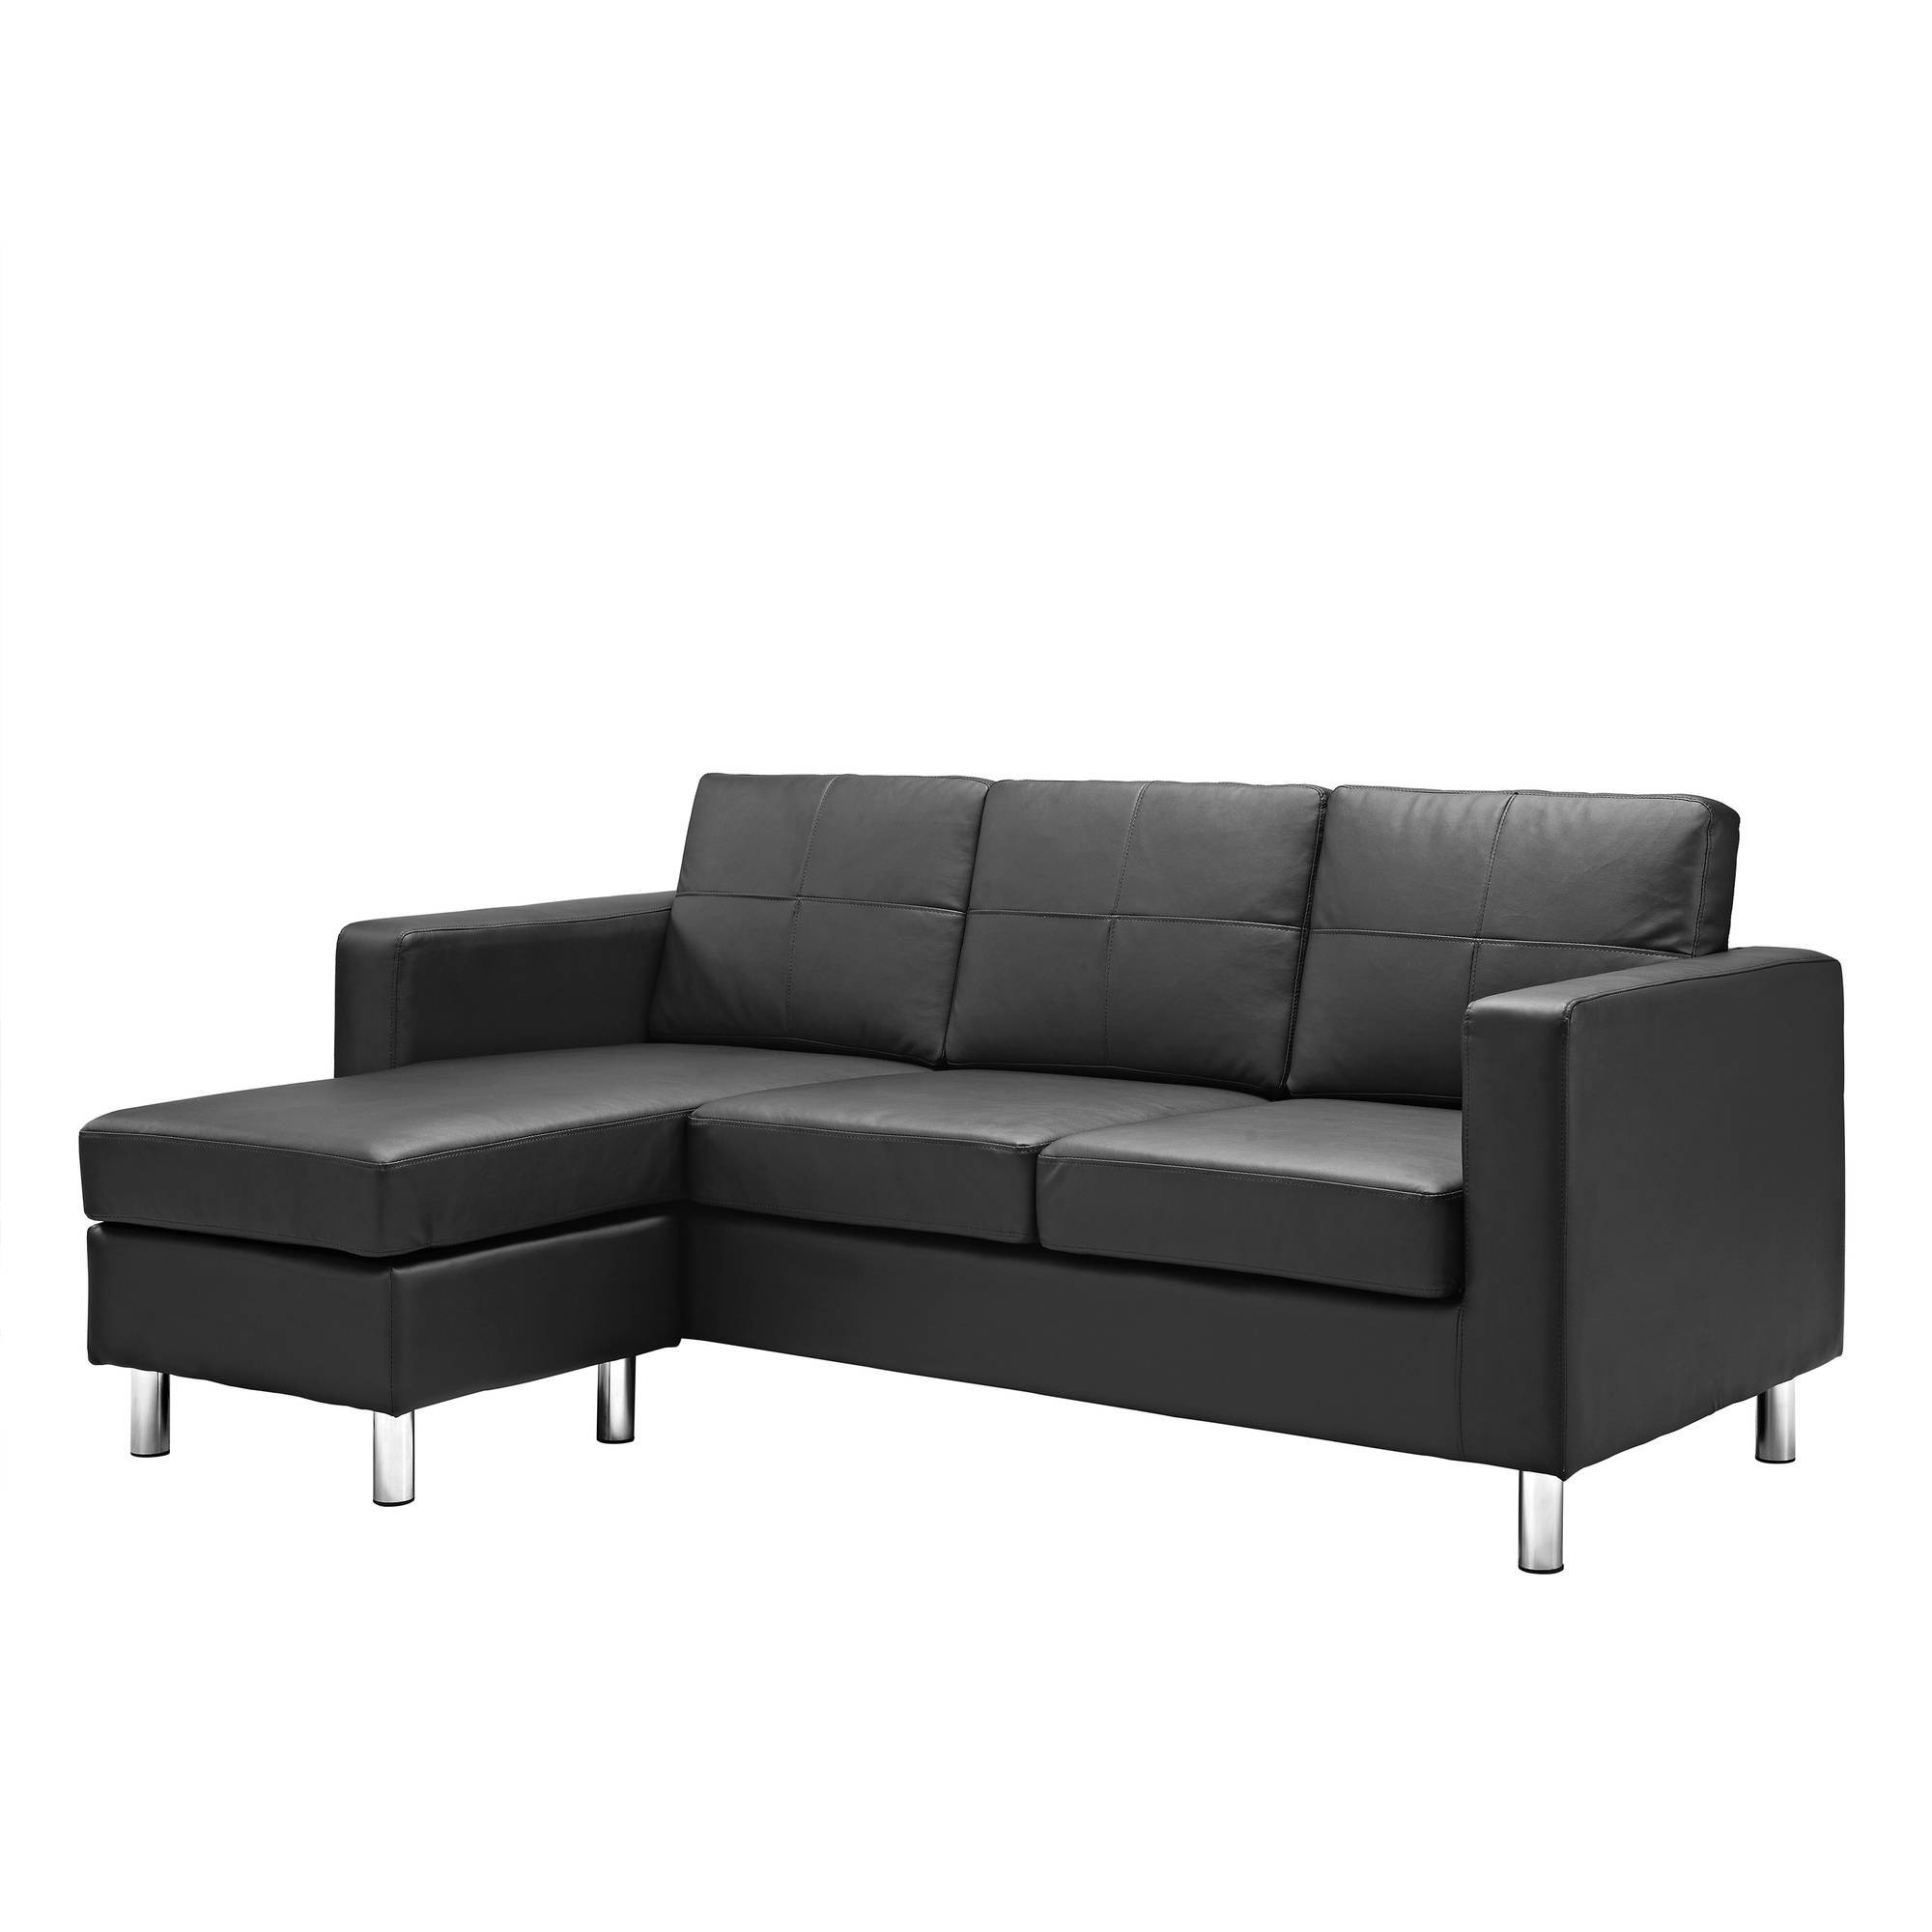 Dorel Living Small Spaces Configurable Sectional Sofa, Multiple inside Tiny Sofas (Image 7 of 30)